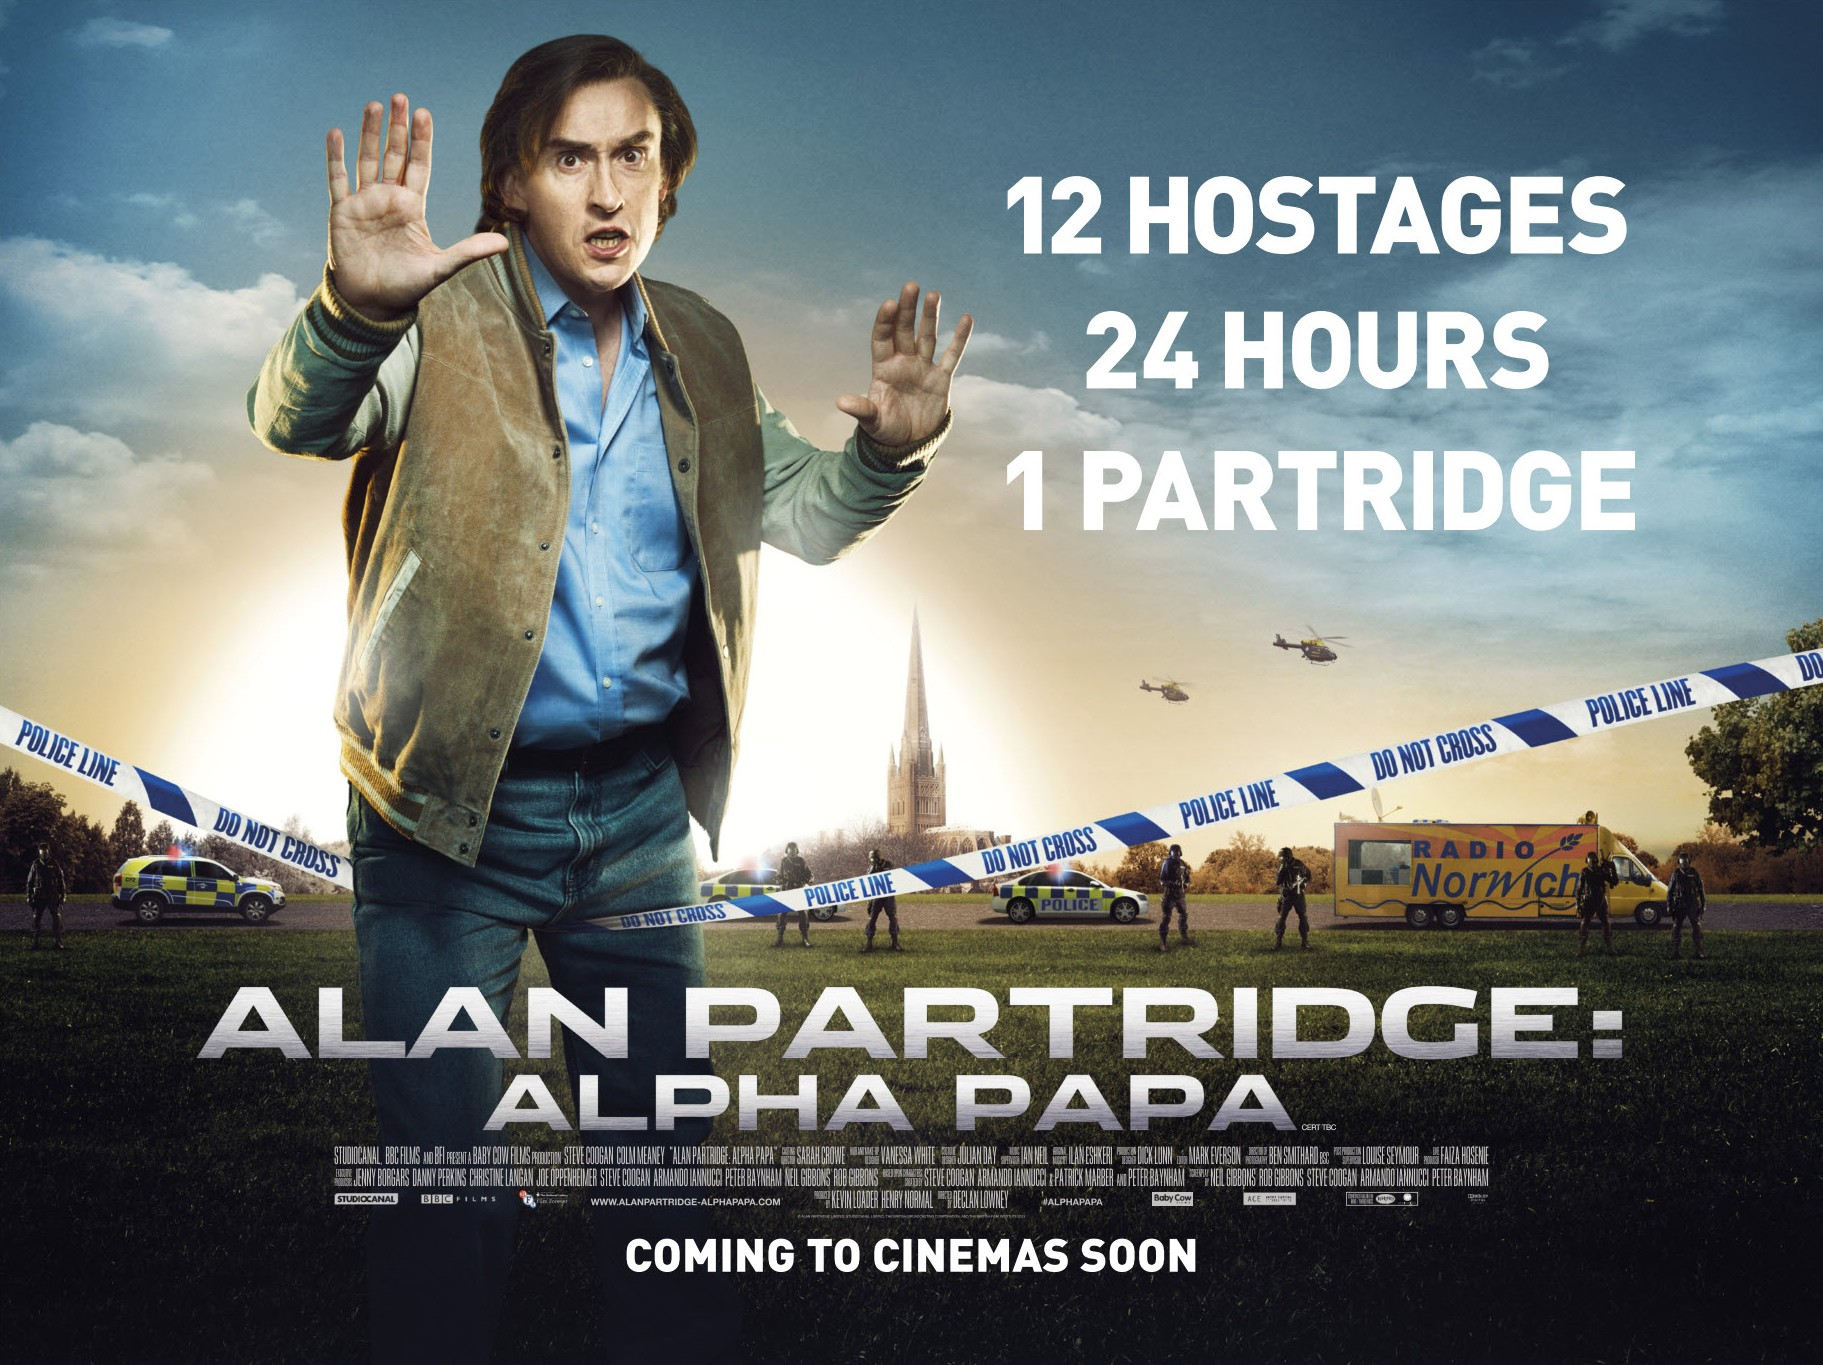 <b>Win Alan Partridge: ...</b>